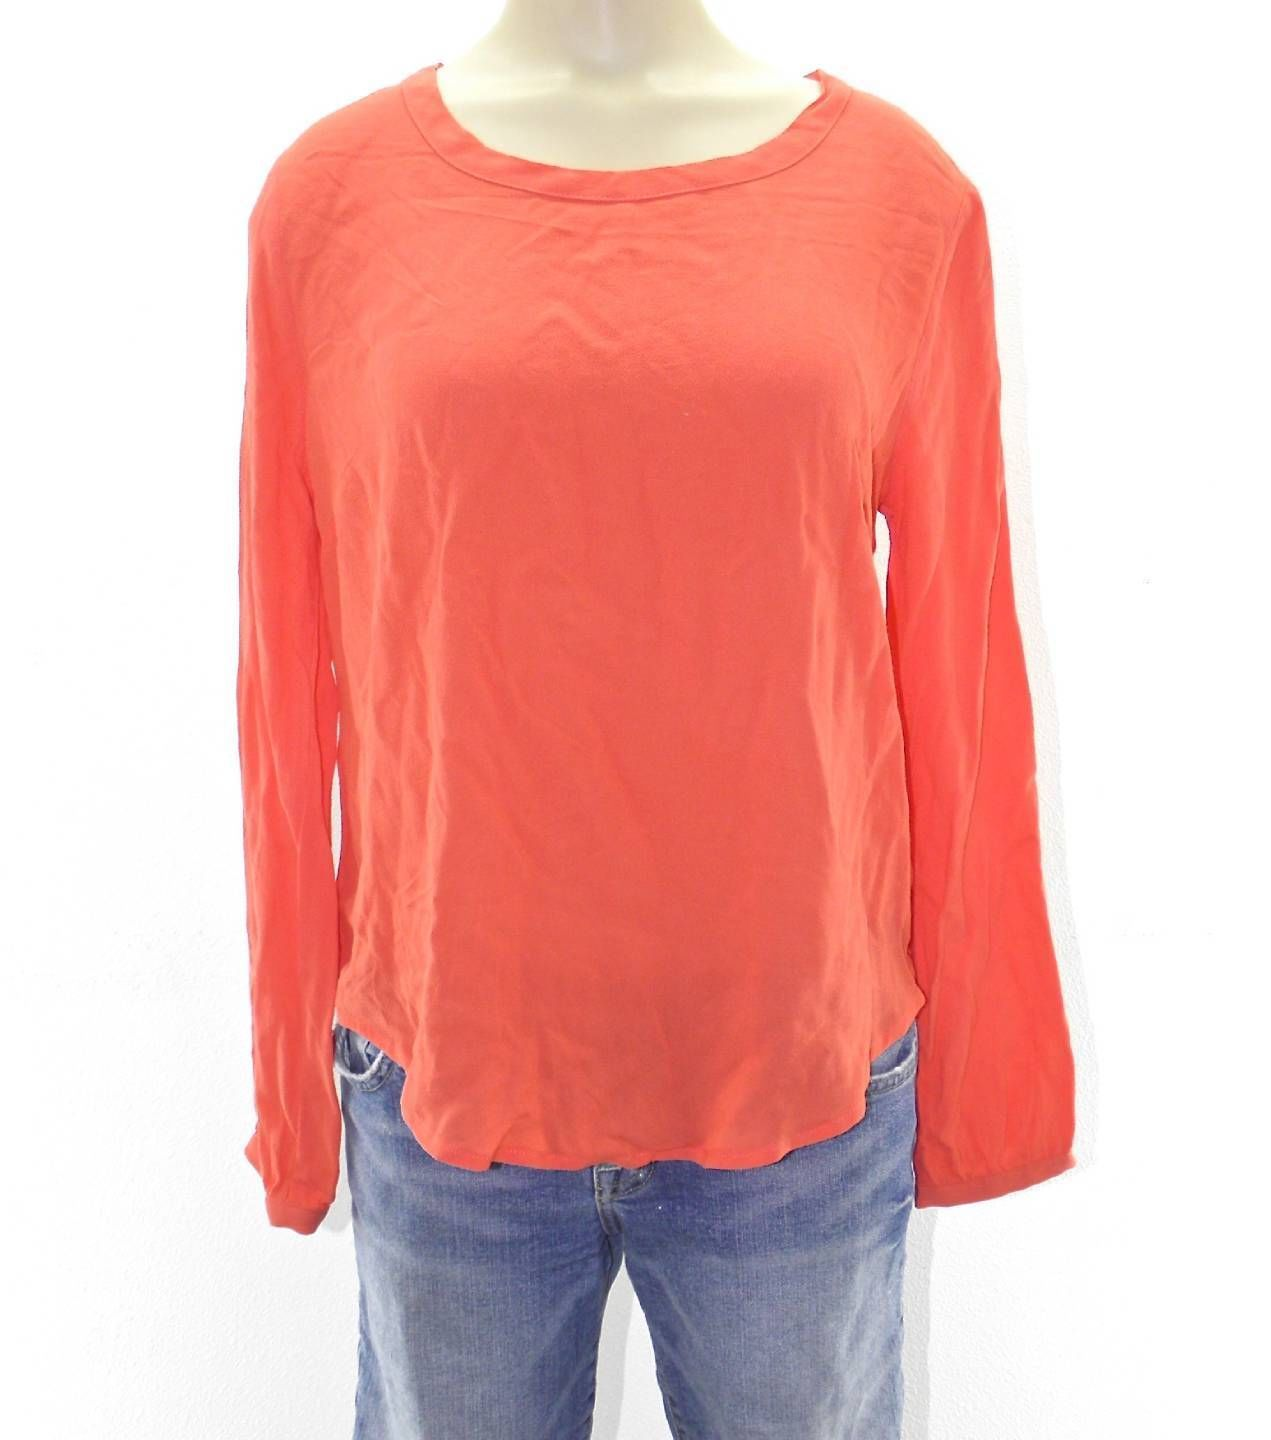 NEW WOMENS ELODIE LONG SLEEVE CORAL SHIRT BLOUSE SIZE S SMALL